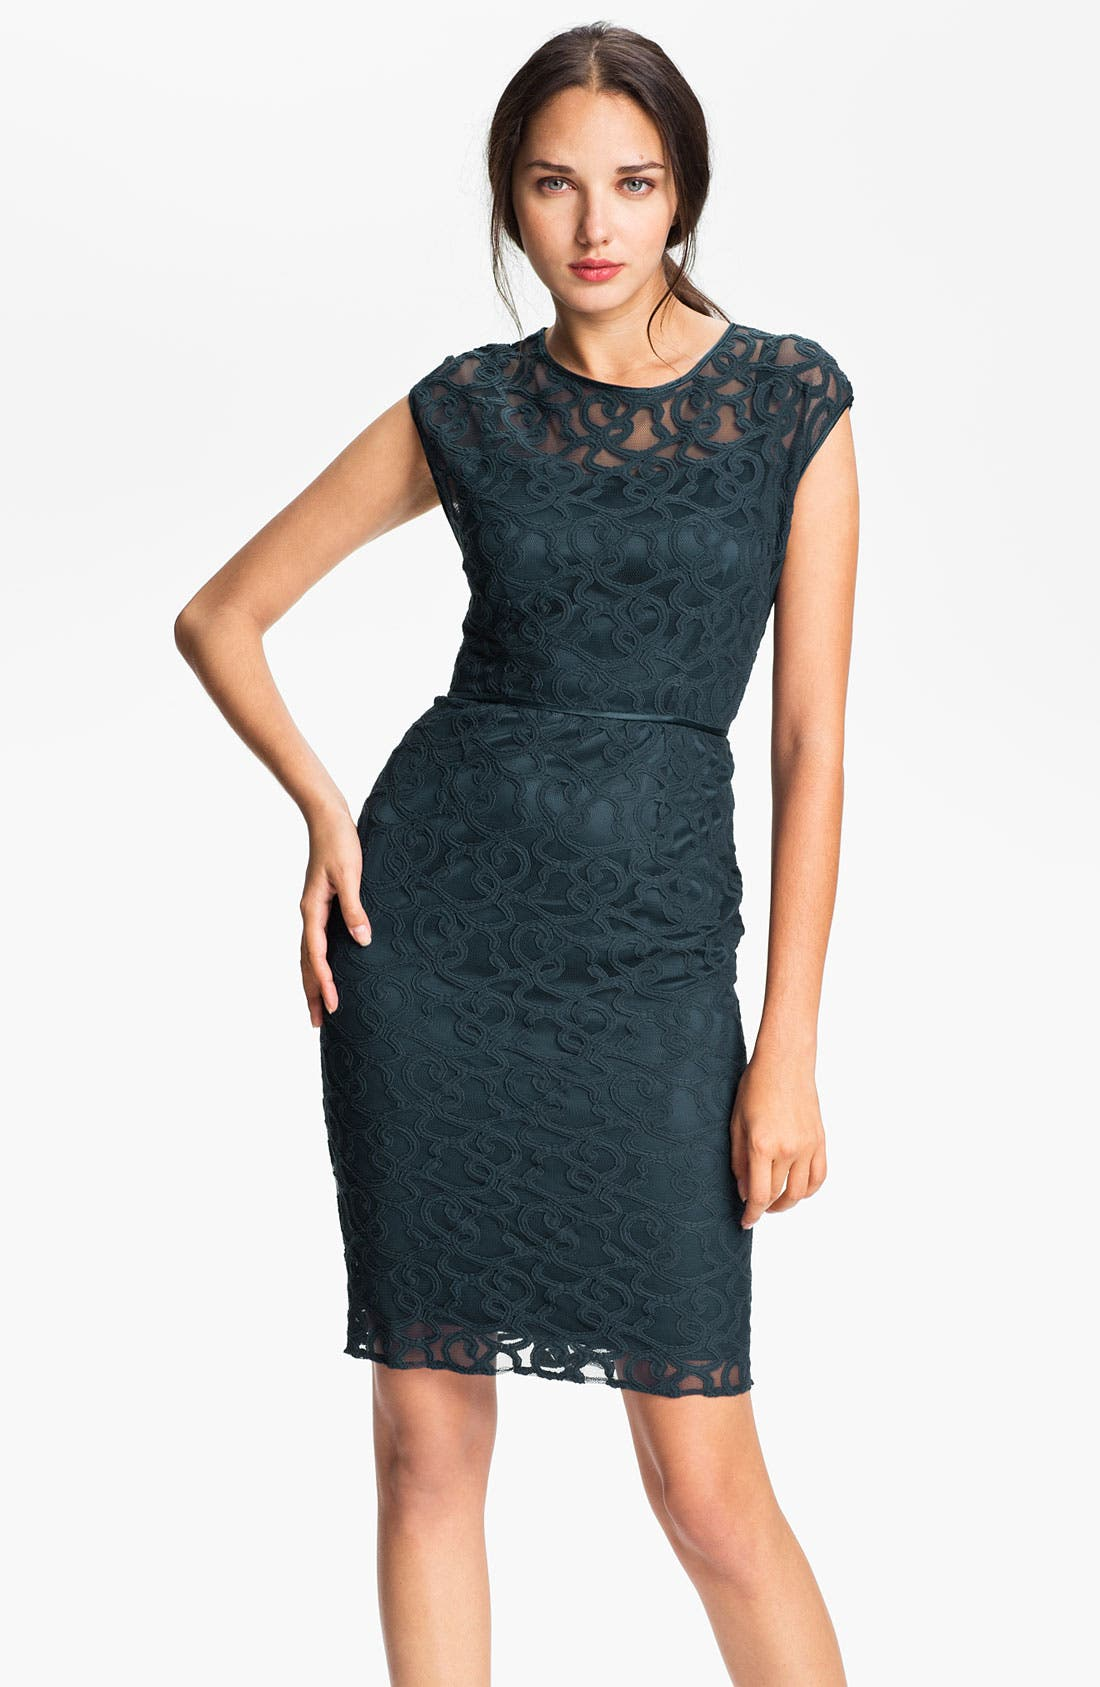 Alternate Image 1 Selected - Adrianna Papell Lace & Mesh Sheath Dress